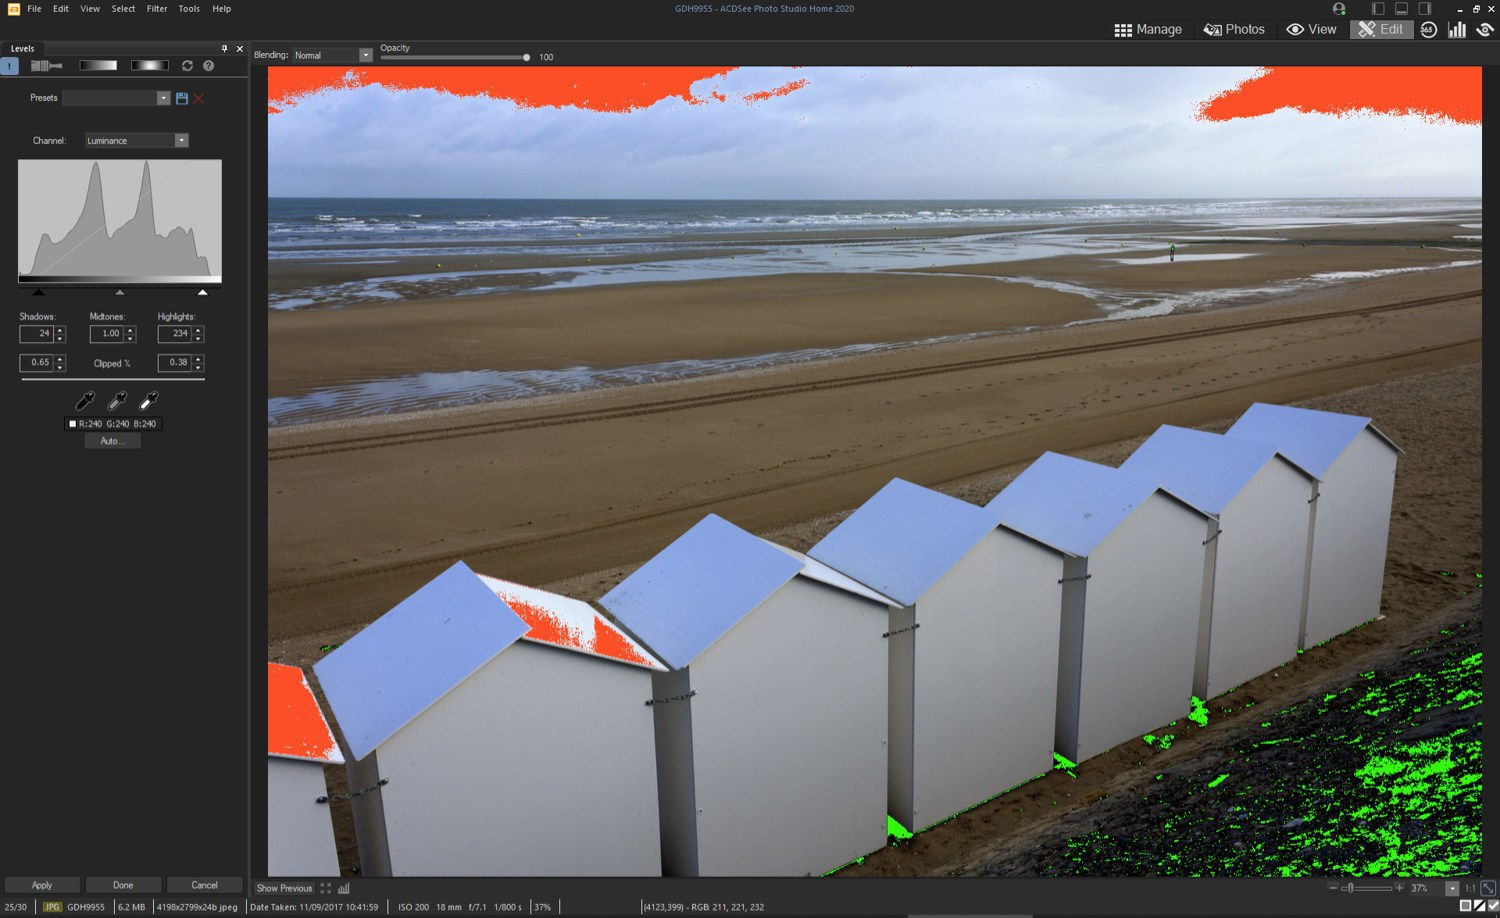 ACDSee Photo Studio Home 2020 v23.0.2 Build 1377 With Crack Free Download